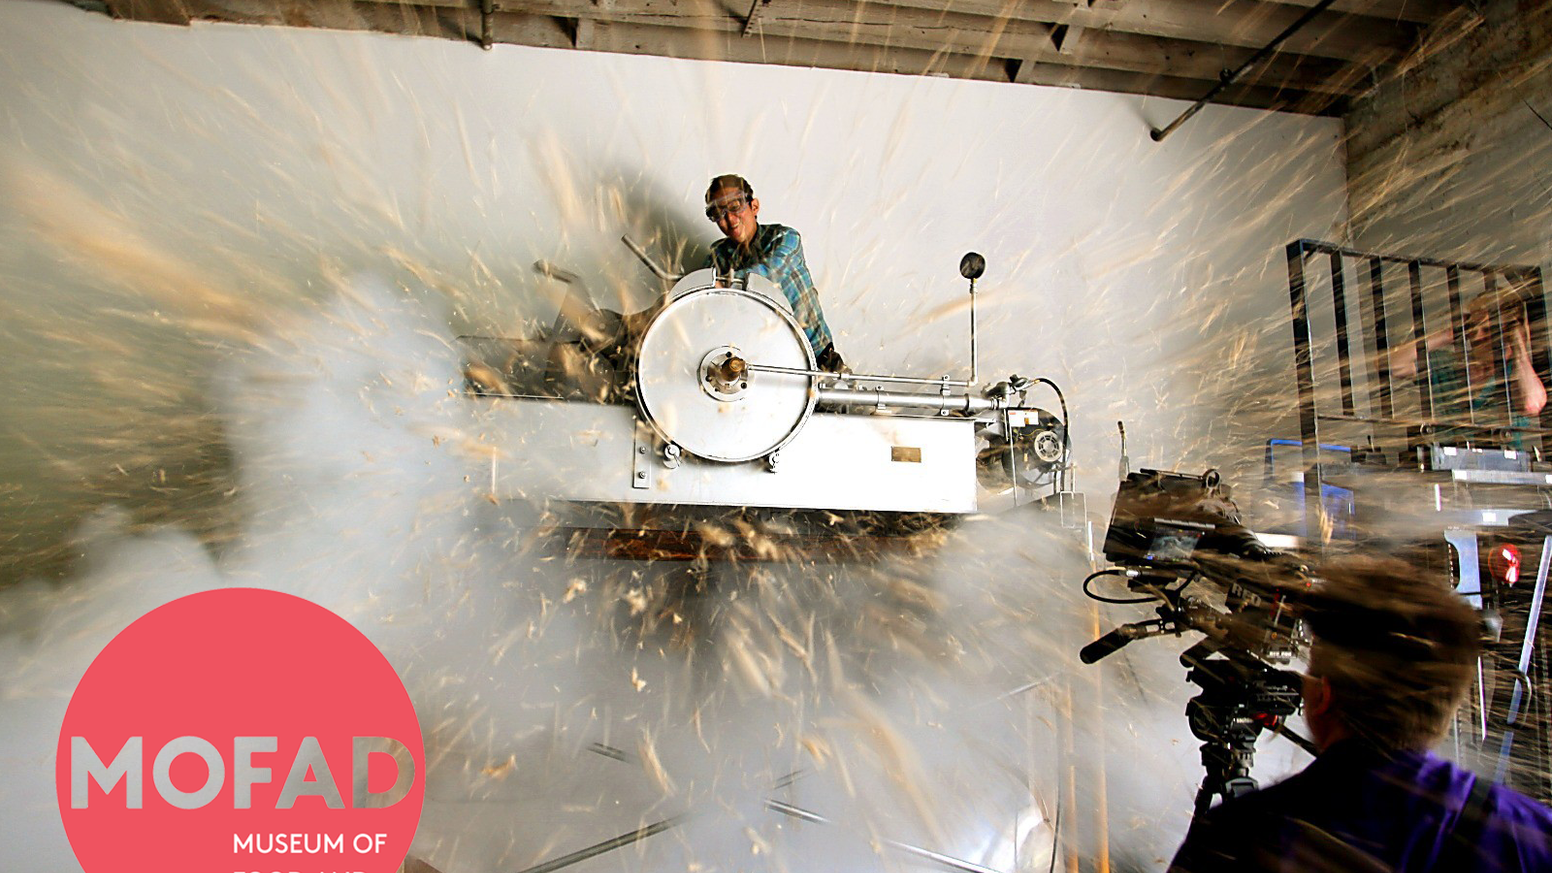 Meet the puffing gun: a whirling 3,200-pound machine that explosively puffs cereal. We made it the first exhibit of the Museum of Food and Drink (MOFAD). Visit mofad.org to learn more about our brick-and-mortar gallery space in Brooklyn.